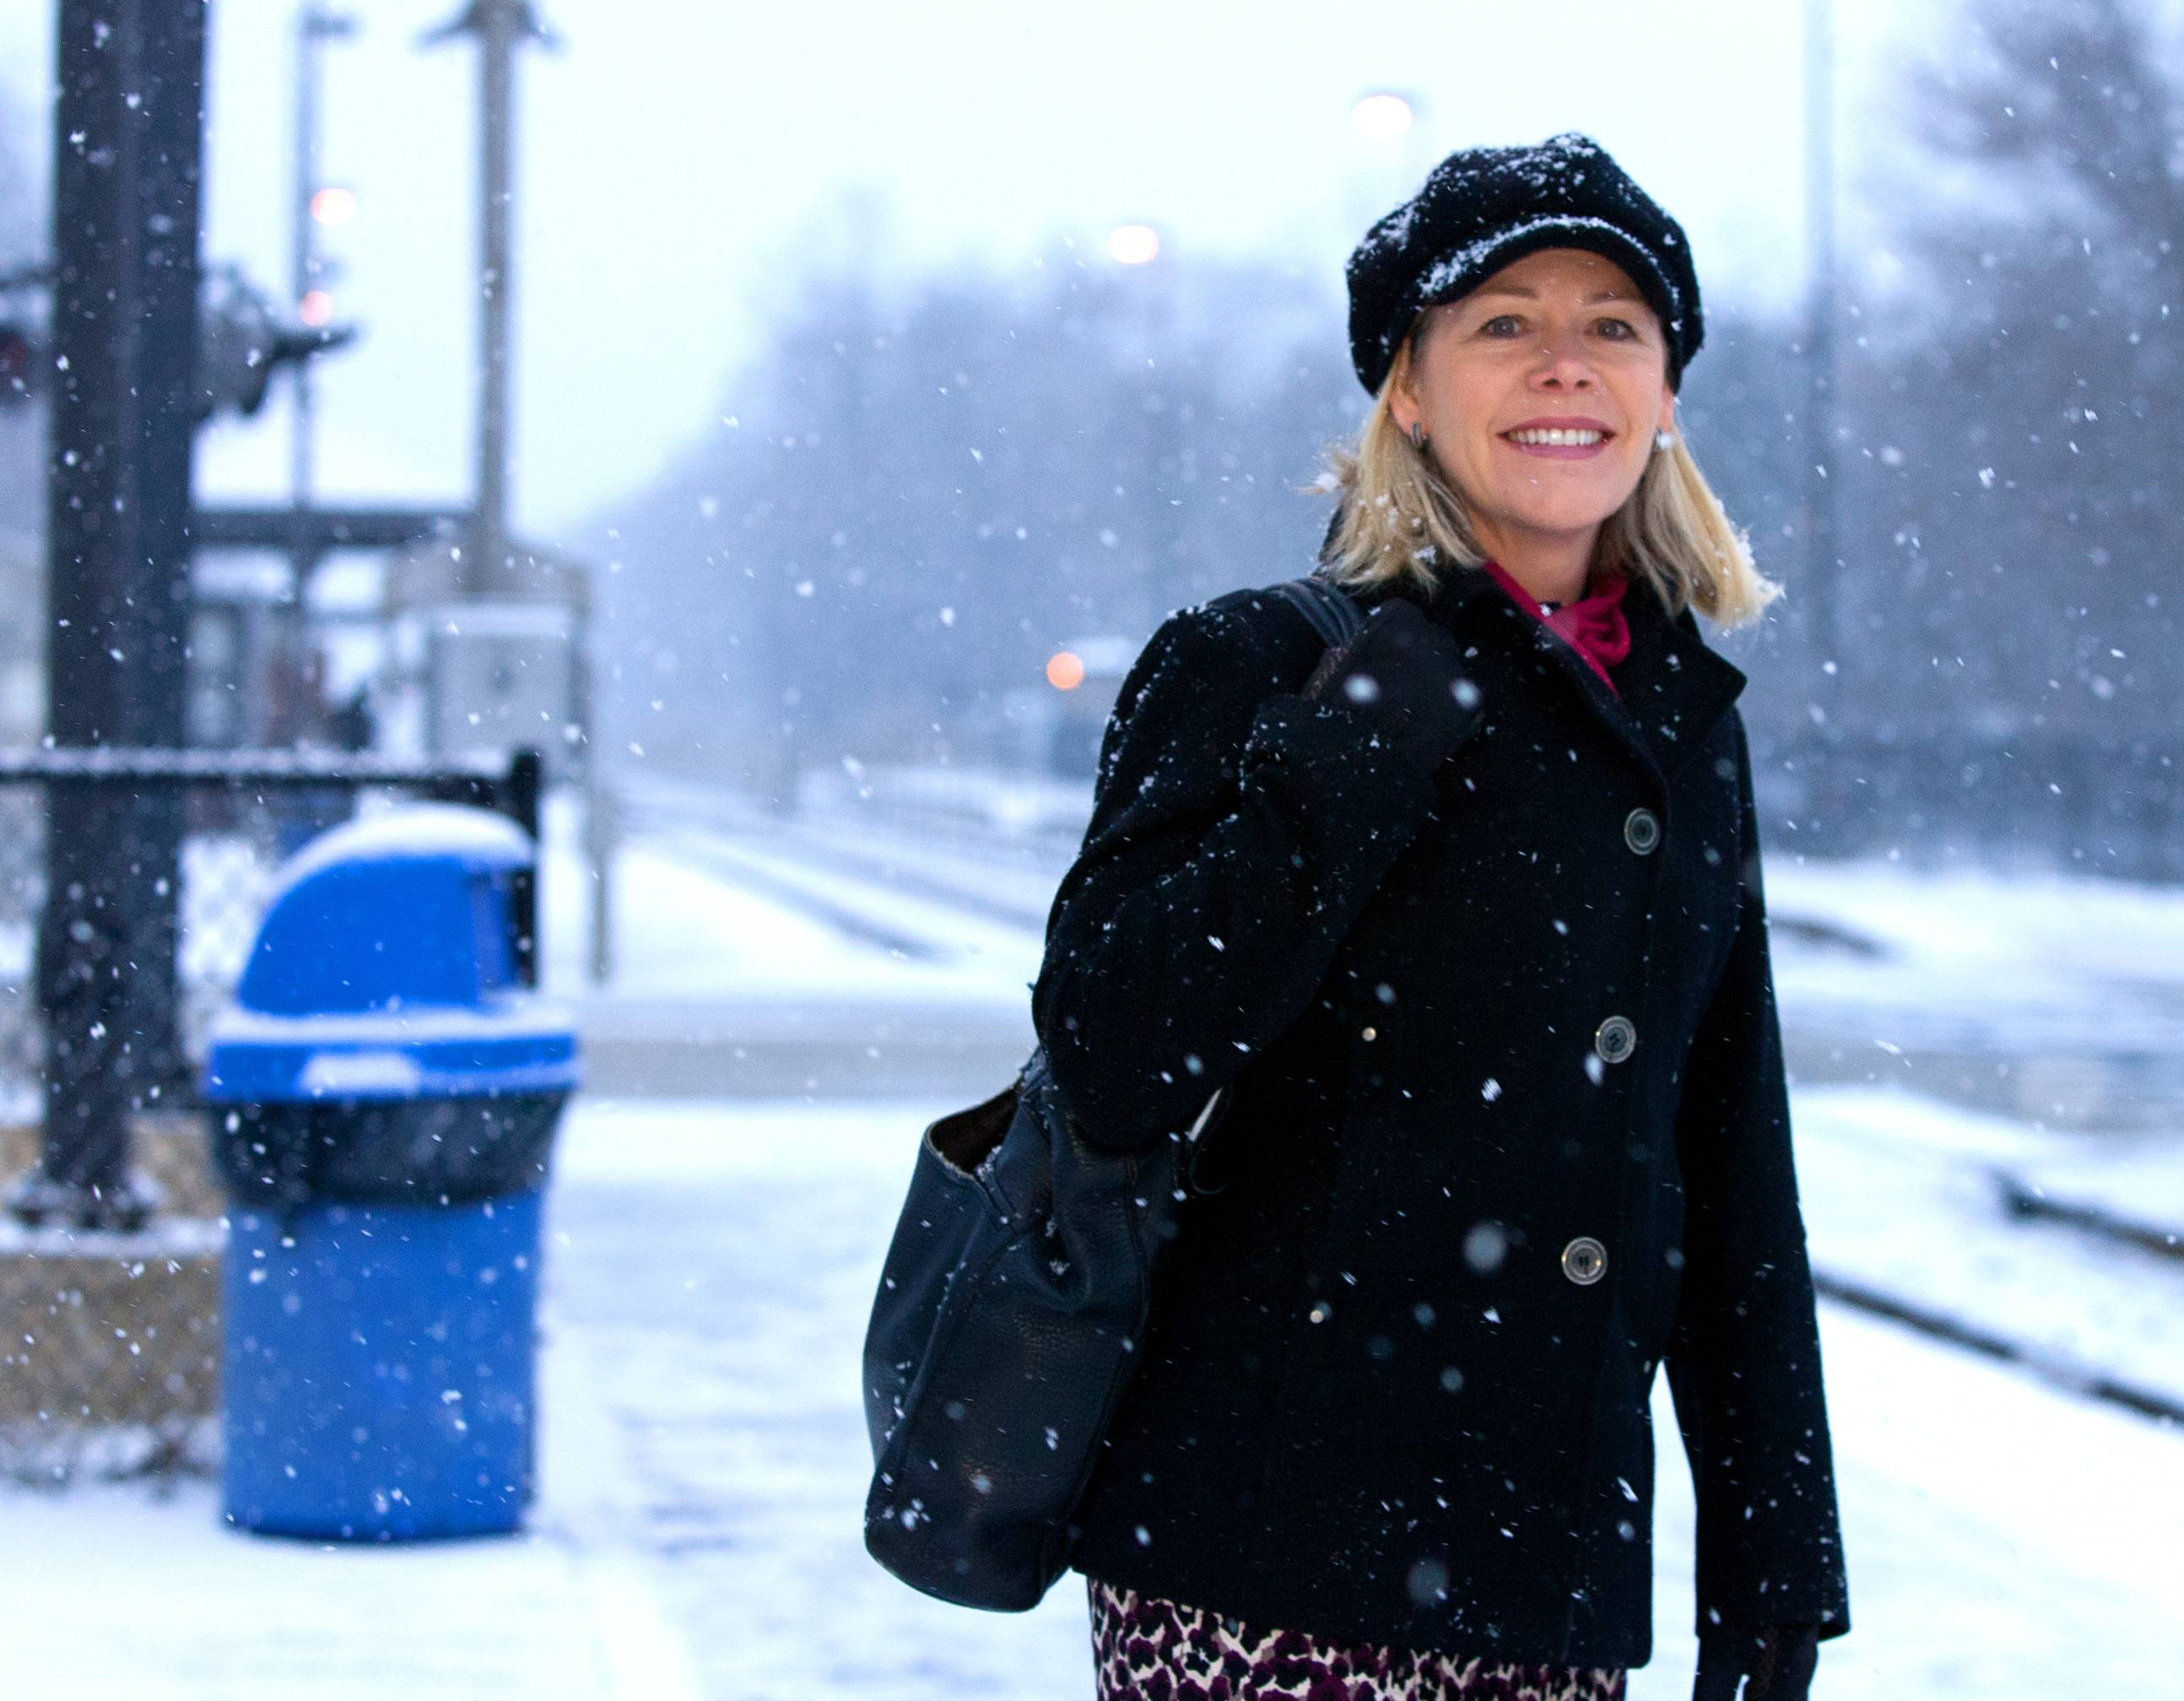 Interim RTA Executive Director Leanne Redden waits to board a Metra train to work at the Medinah station.